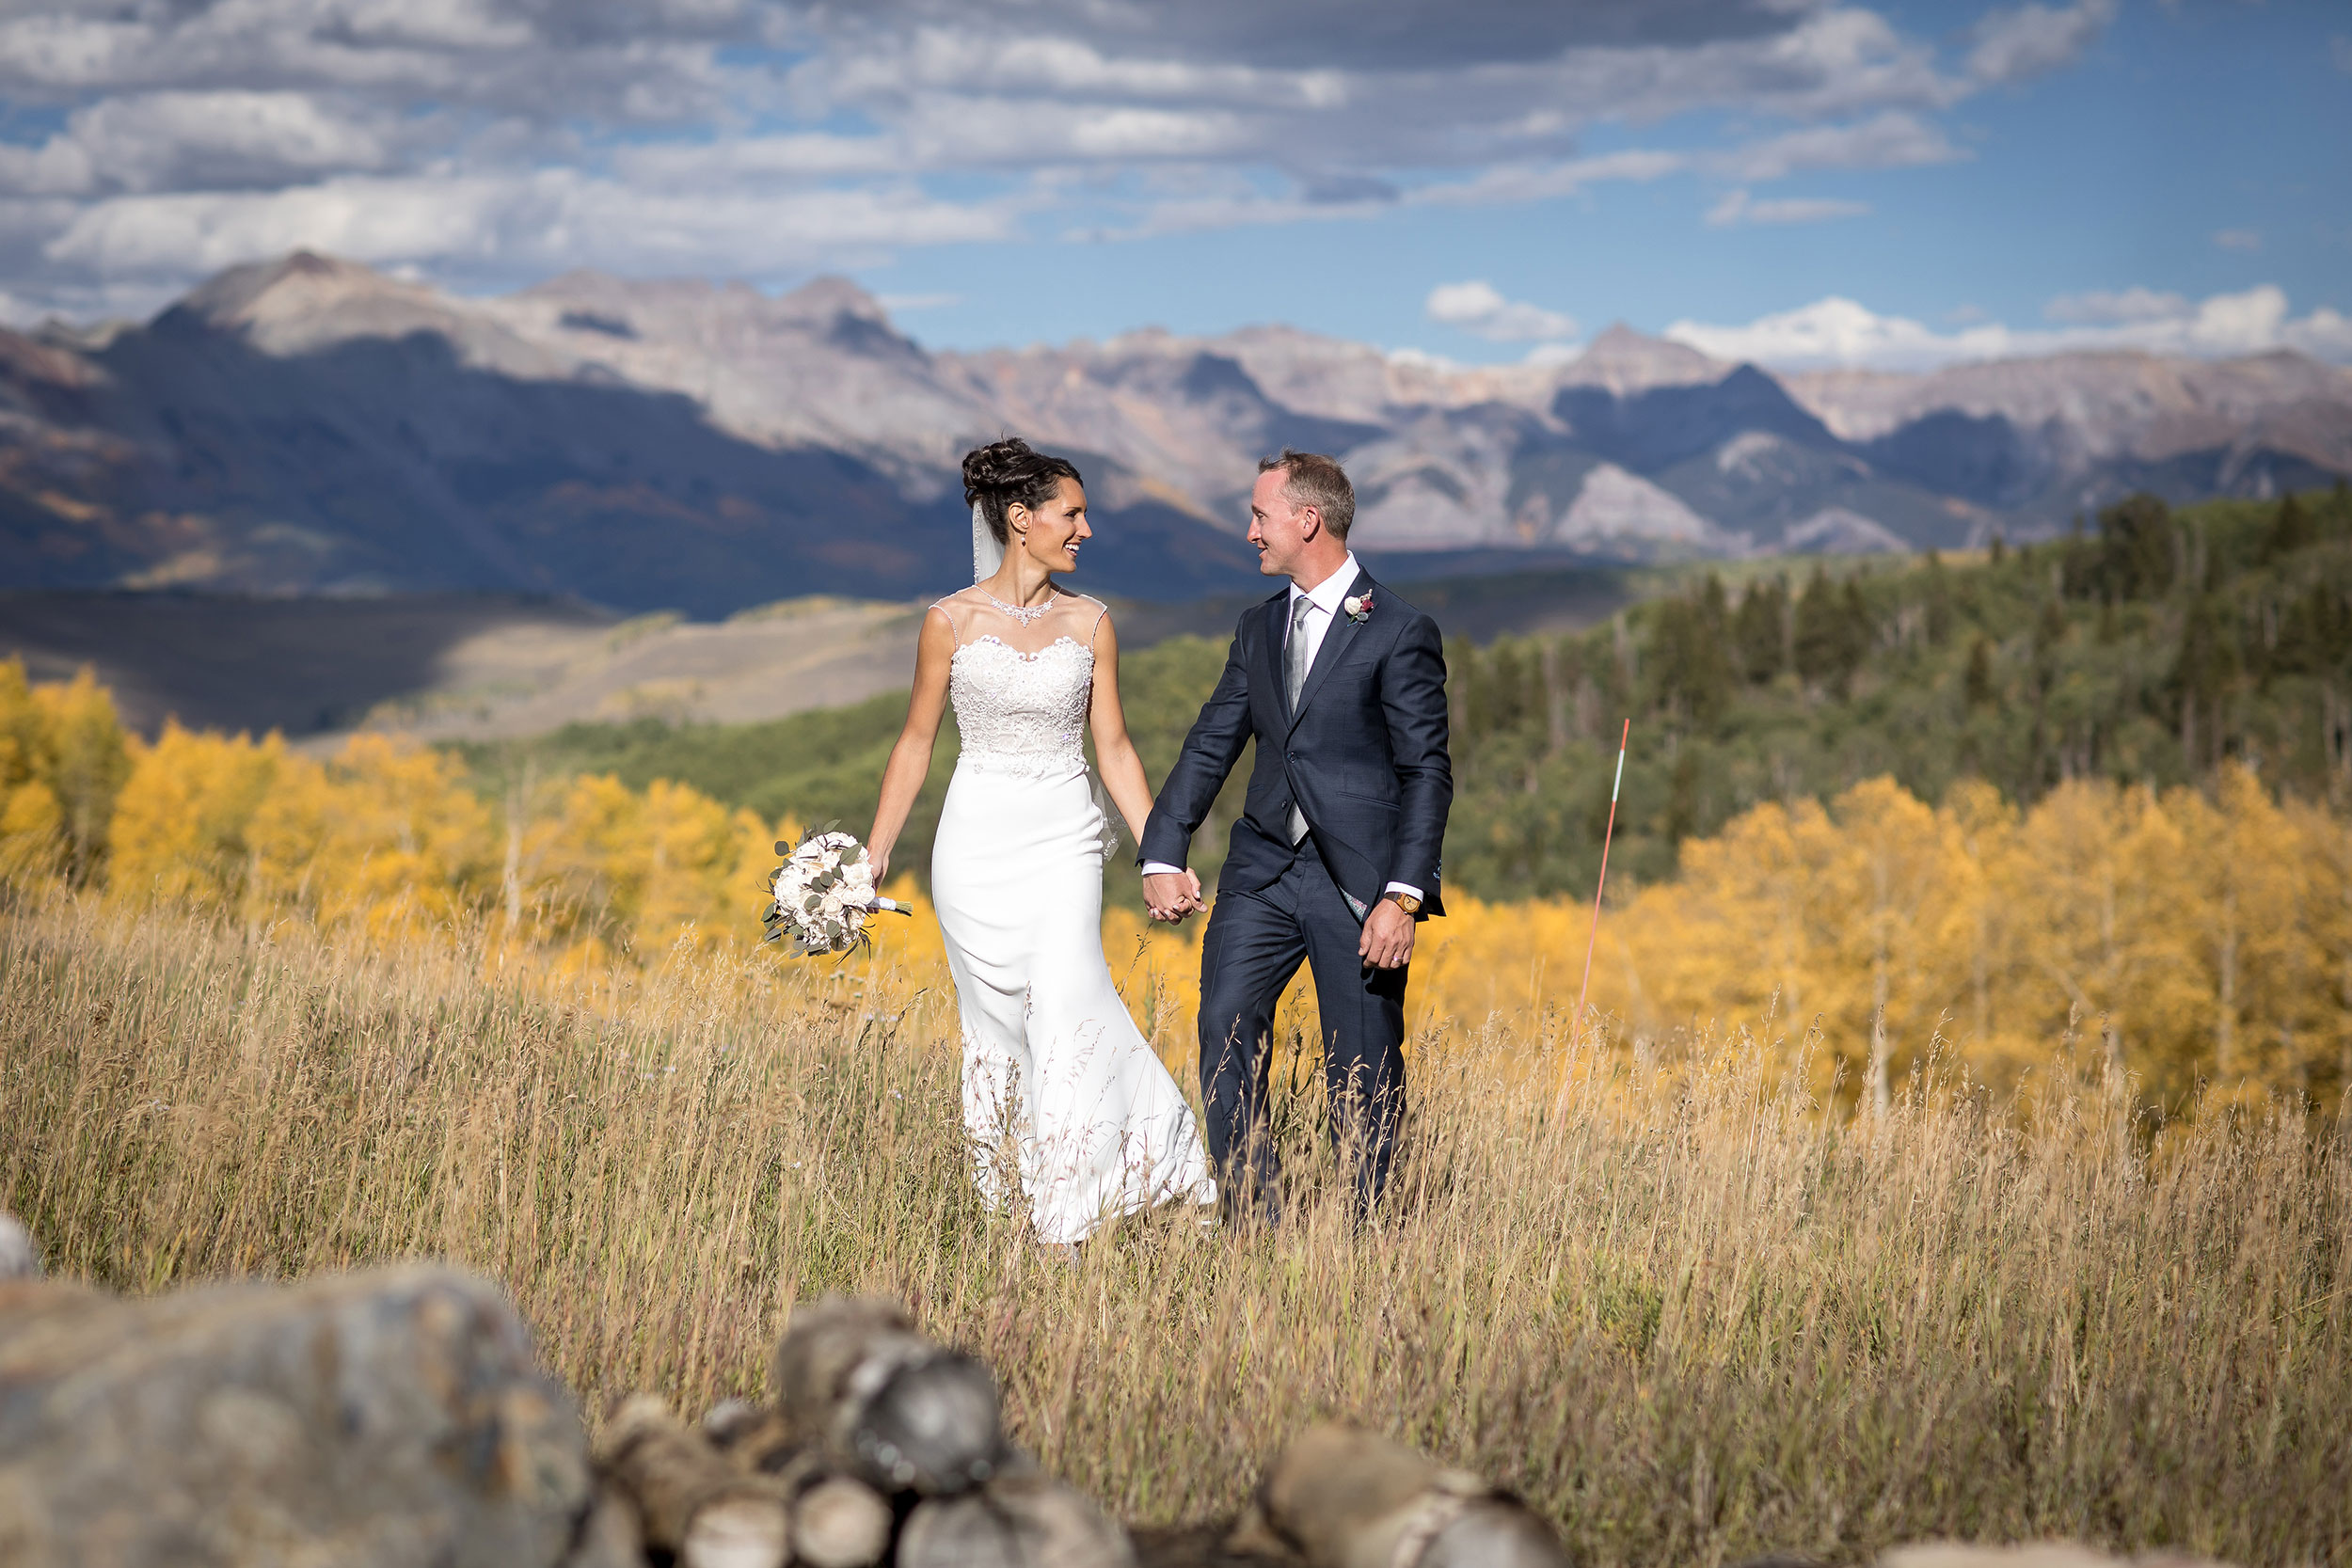 Fall ranch glamping wedding in Telluride, Colorado